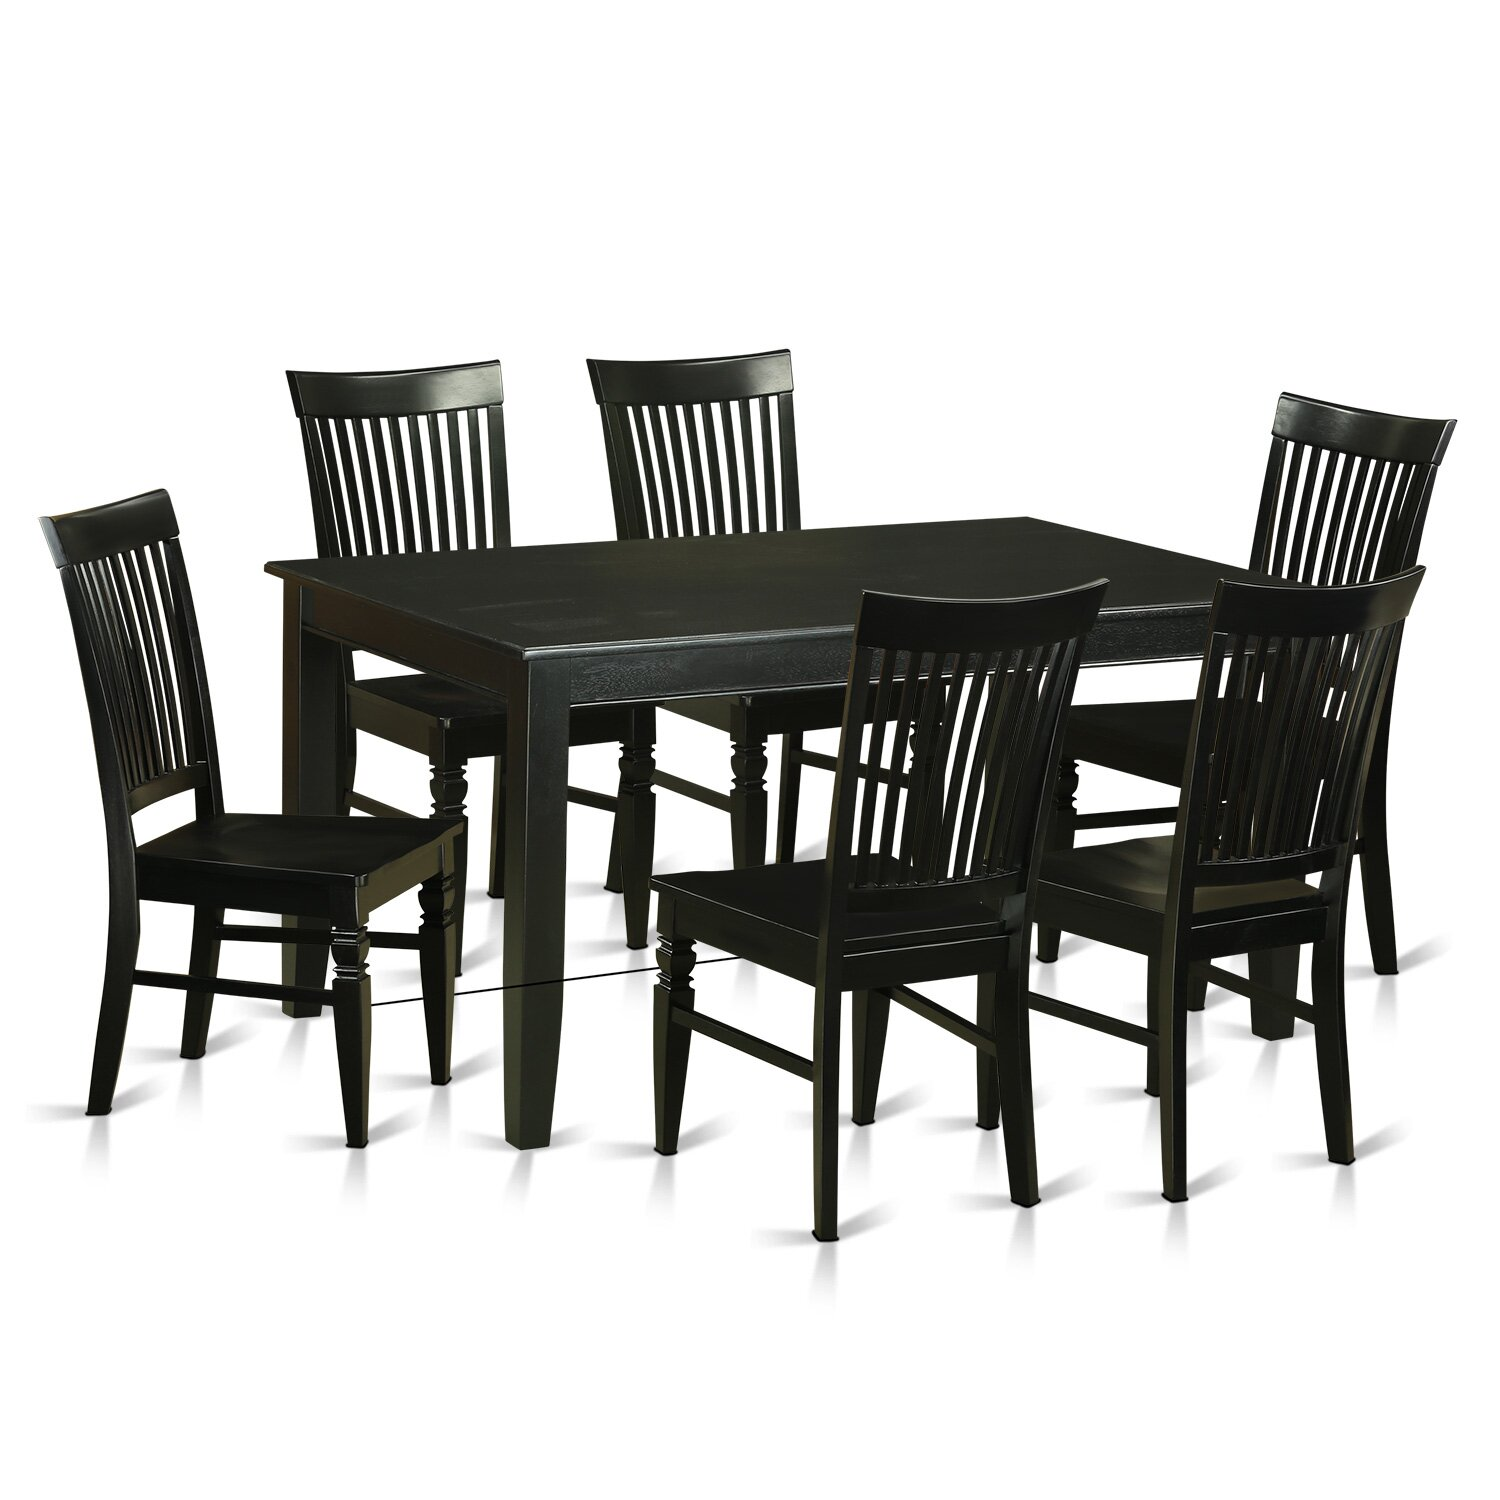 East west dudley 7 piece dining set wayfair for 4 piece dining table set